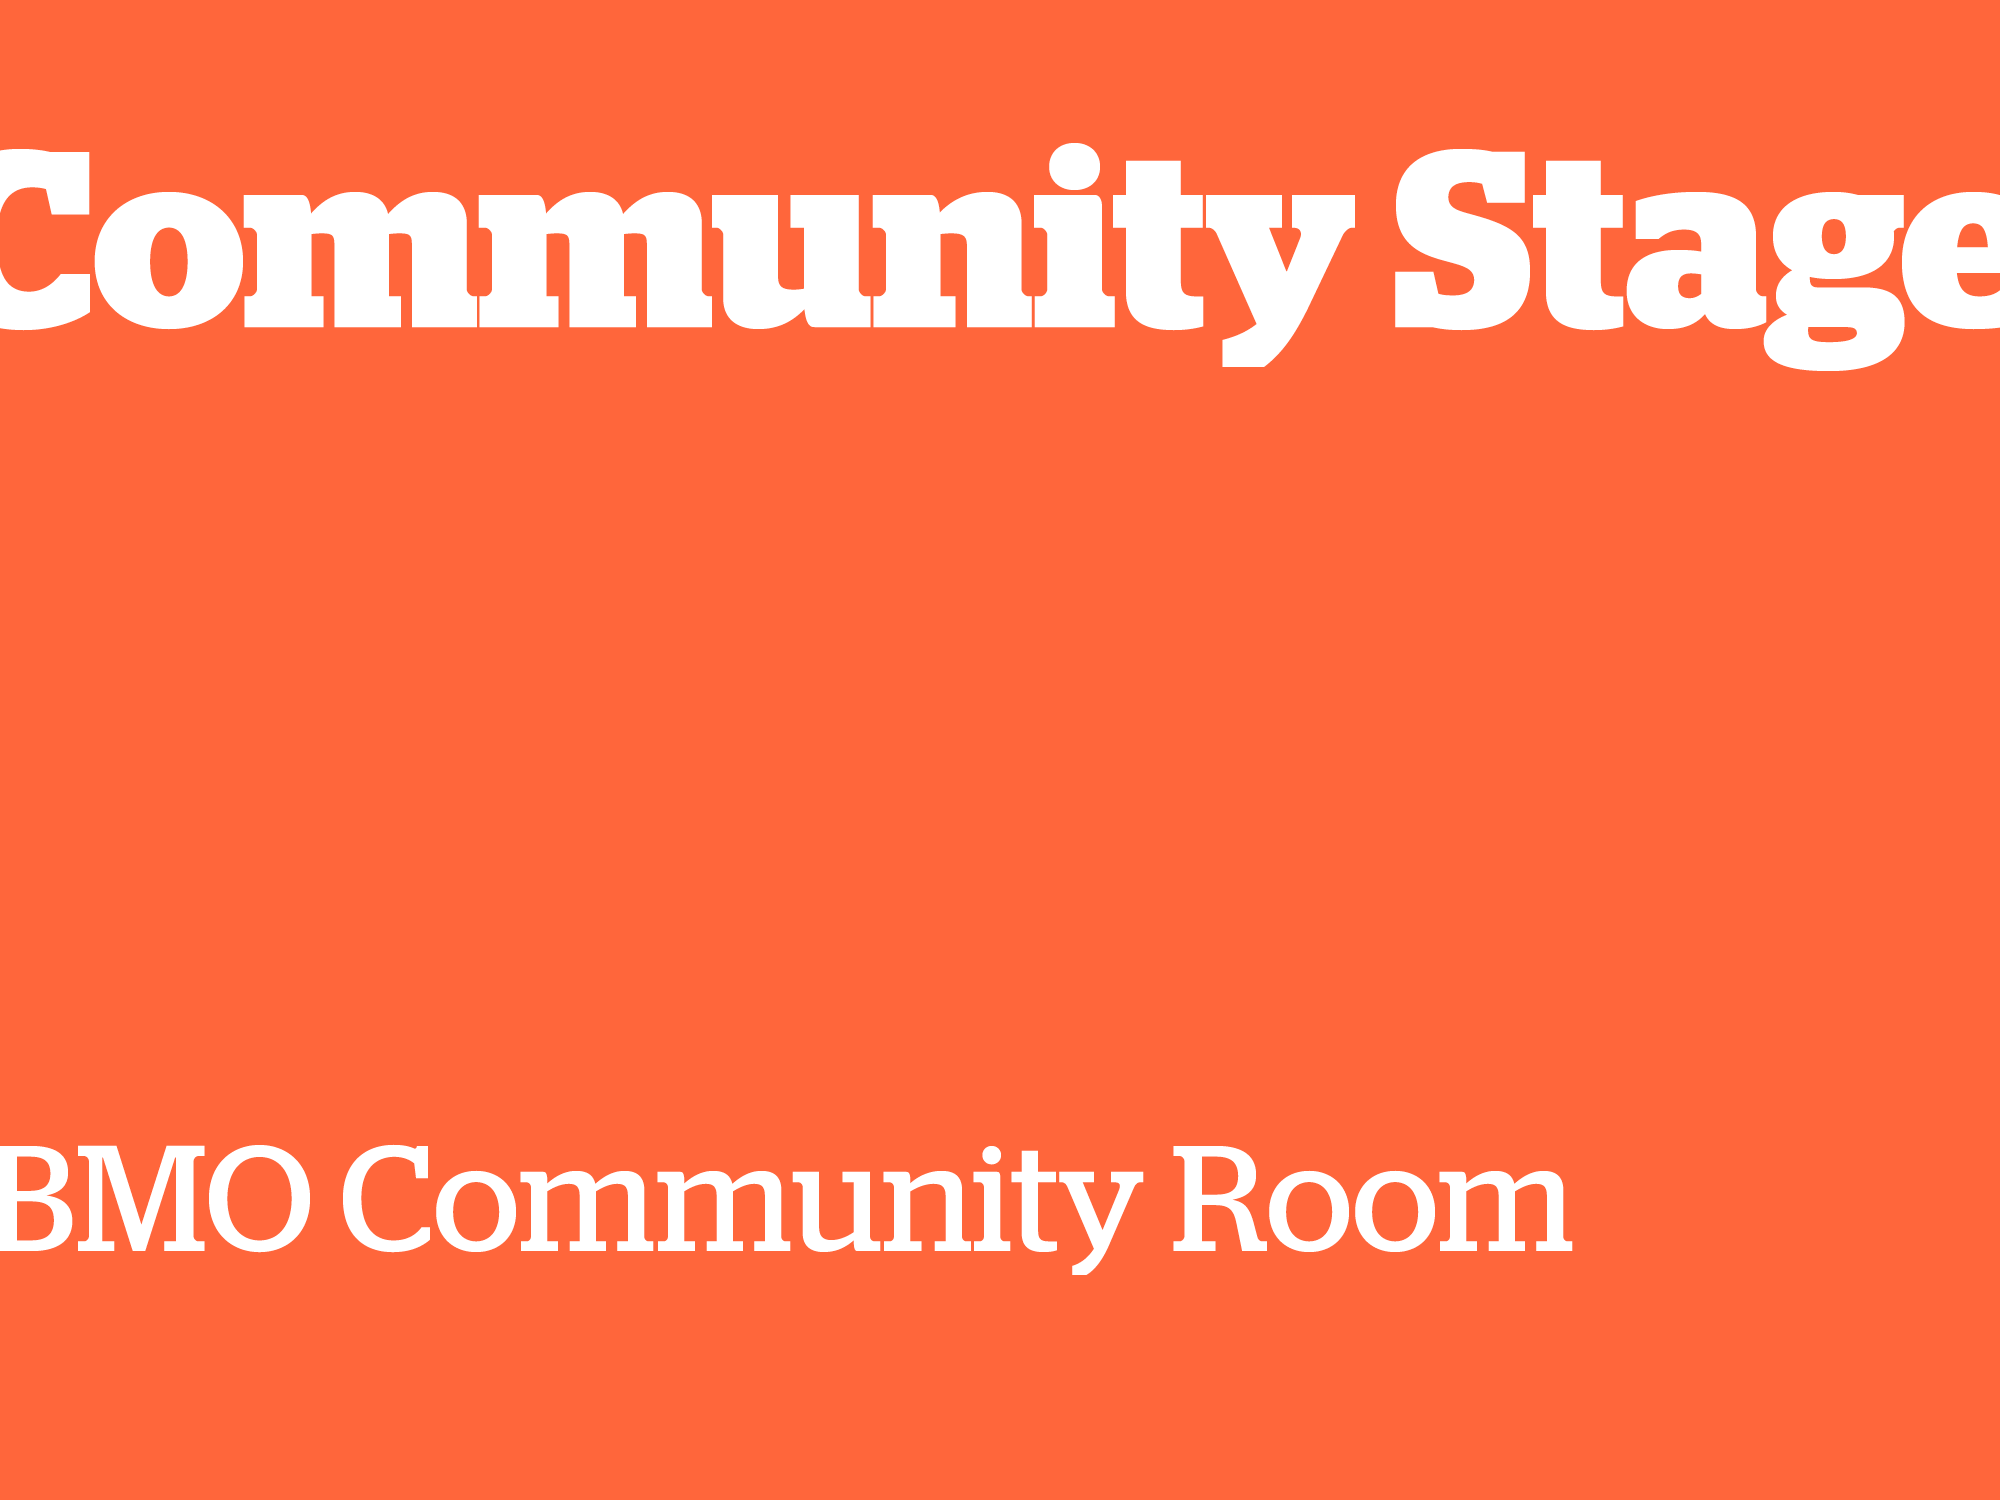 CommunityStage.png